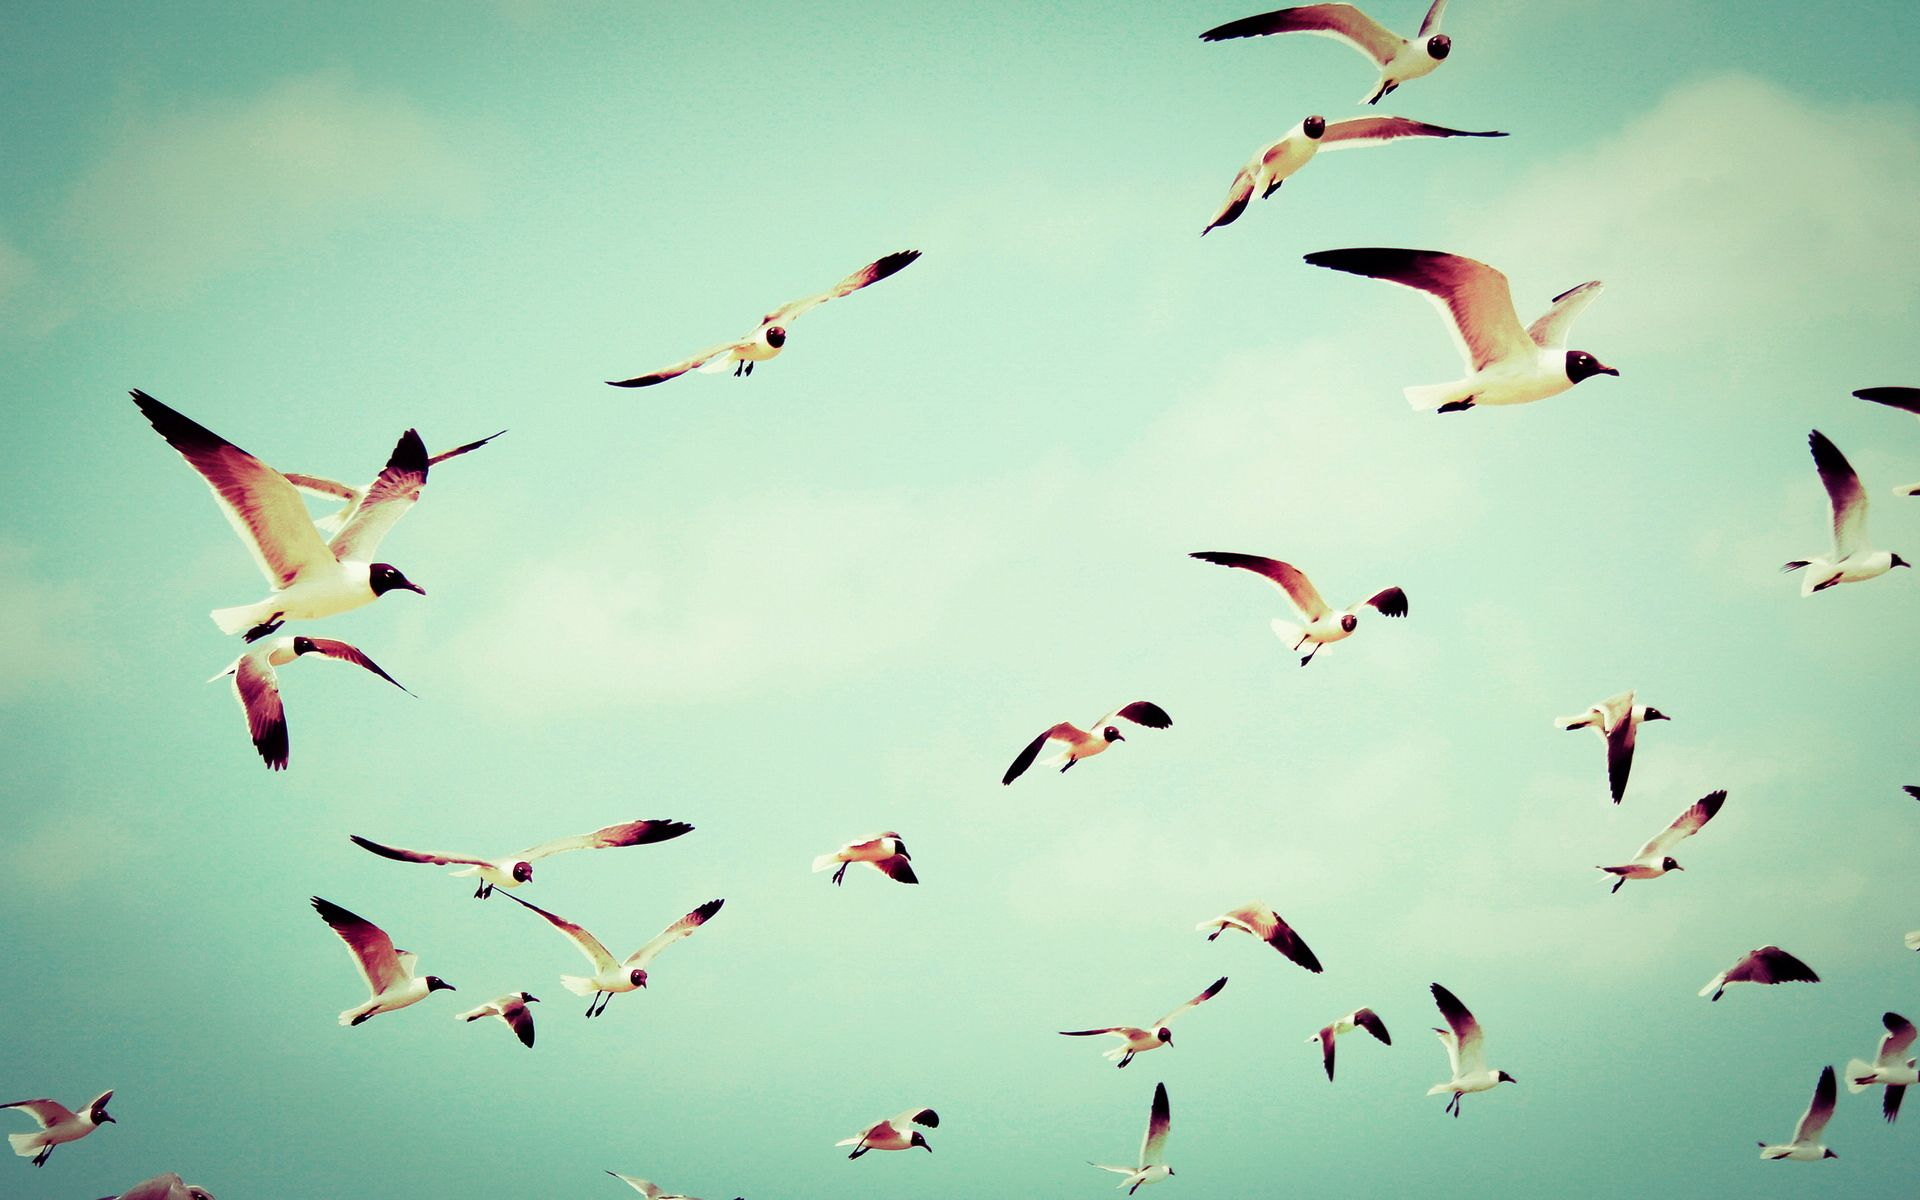 Birds Flying wallpaper high resolution Nature Birds wallpaper 1920x1200